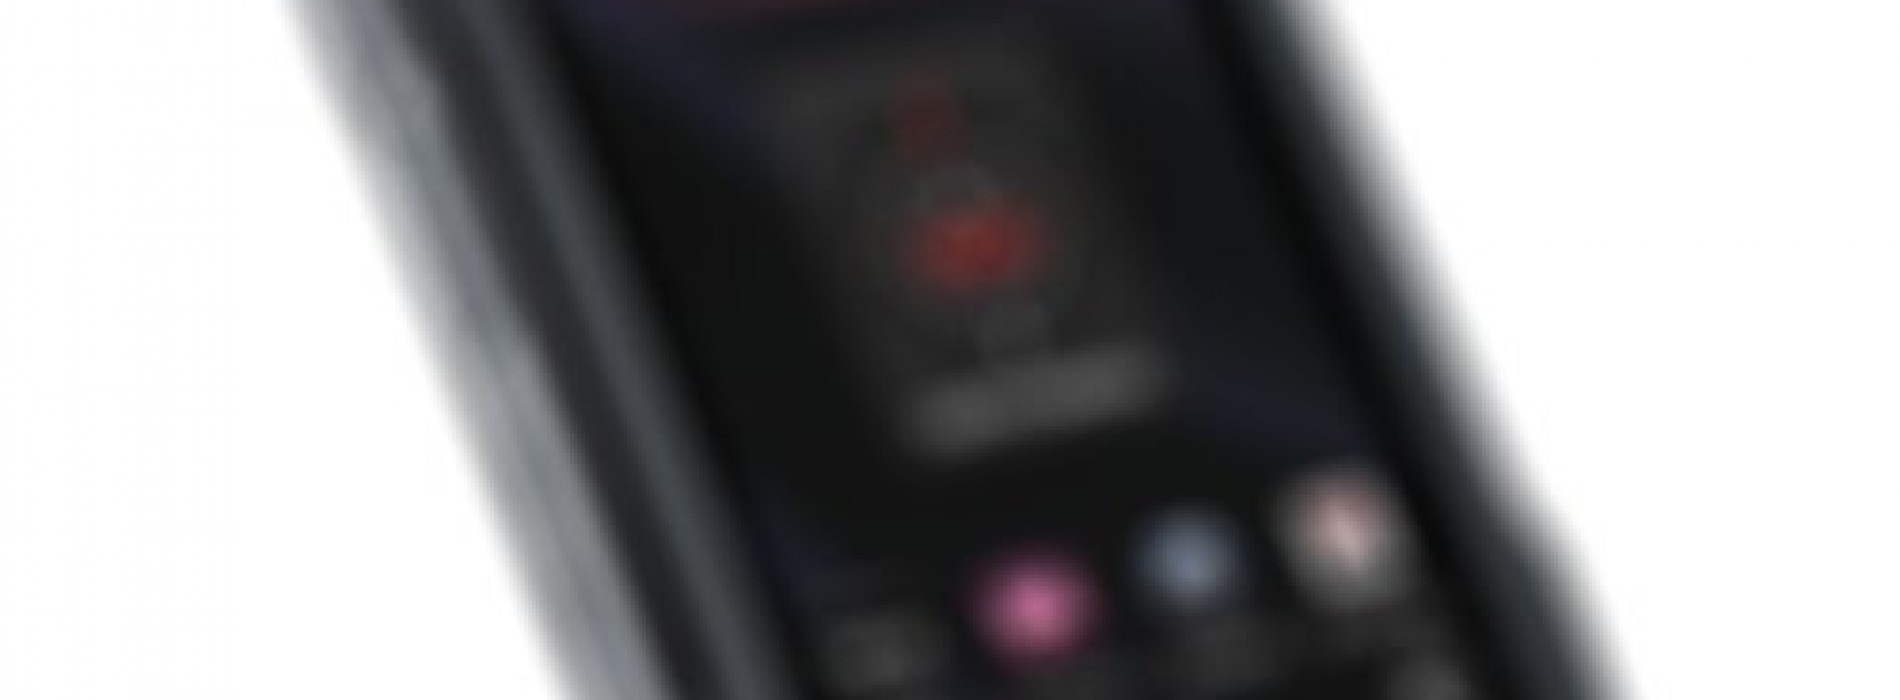 A Blurred Vision of a New Casio Android Handset